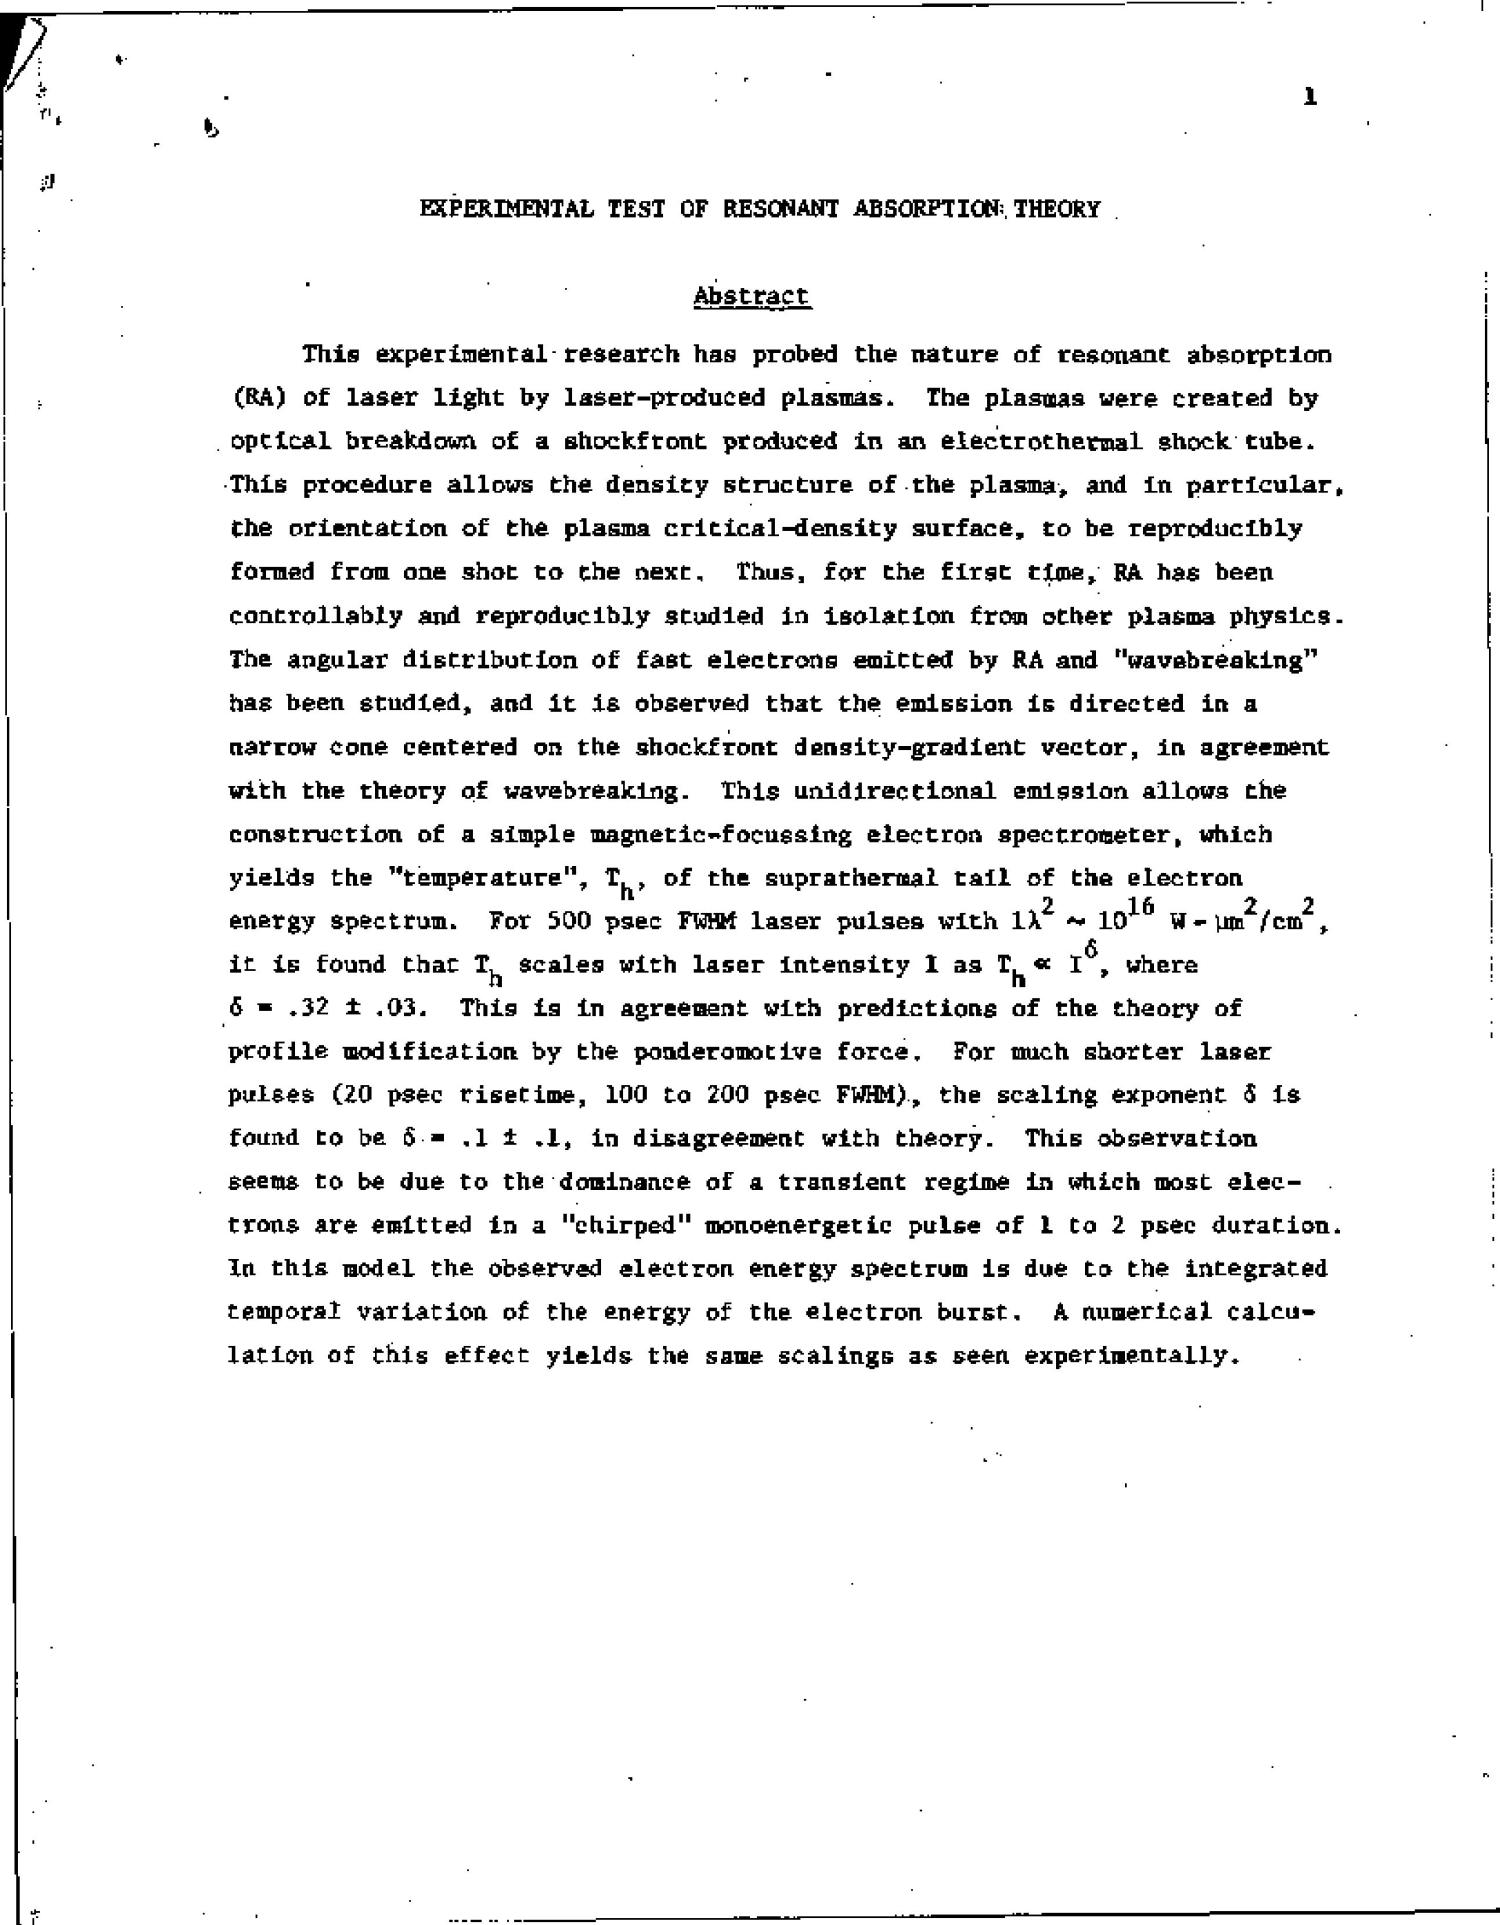 Experimental test of resonant absorption theory. Final report, January 1, 1978-December 31, 1979                                                                                                      [Sequence #]: 4 of 17